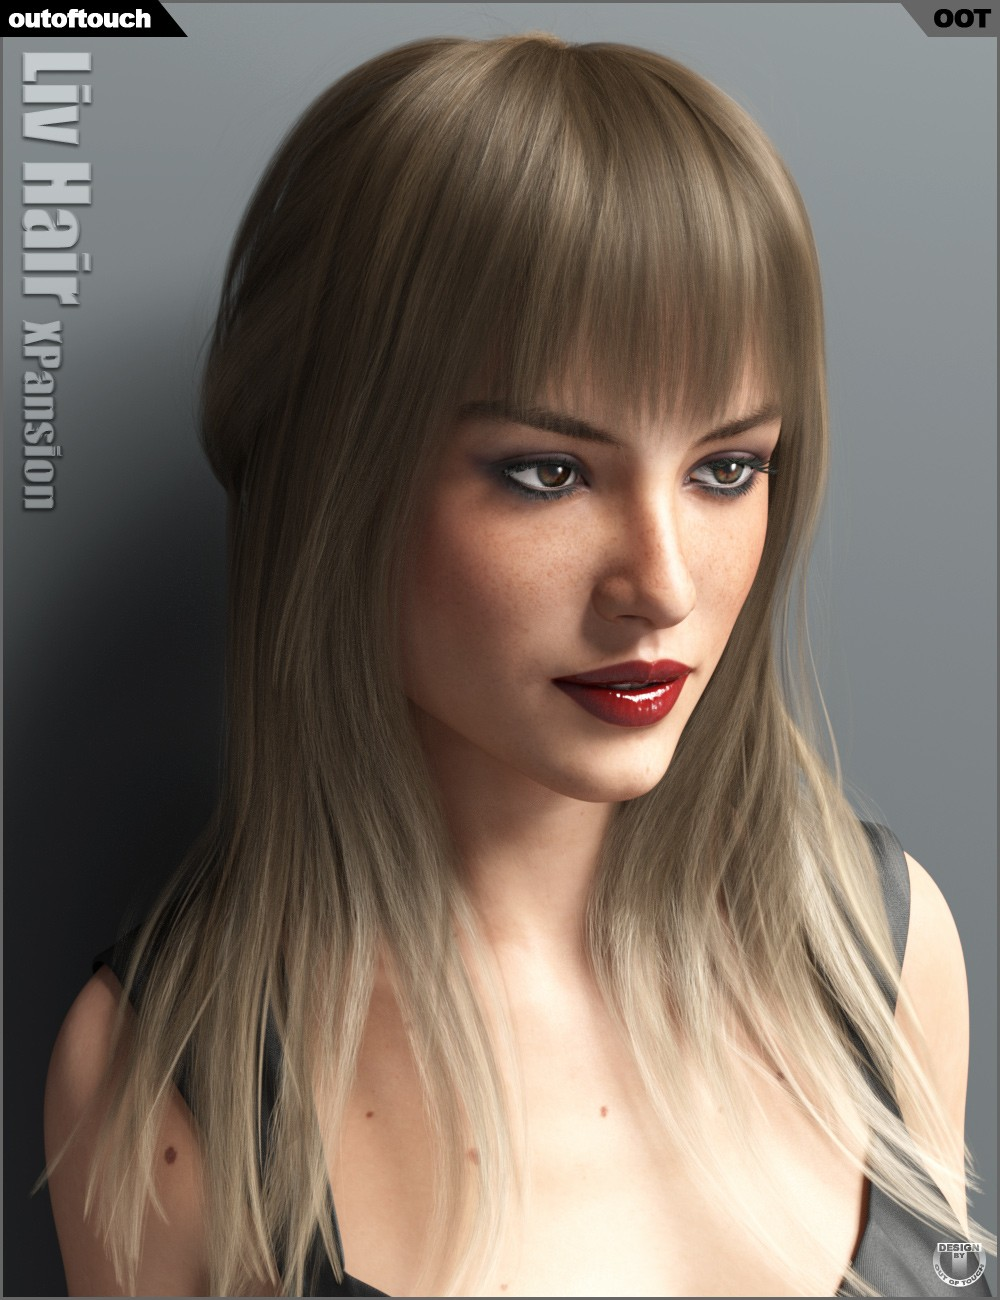 Liv Hair and OOT Hairblending 2.0 Texture XPansion